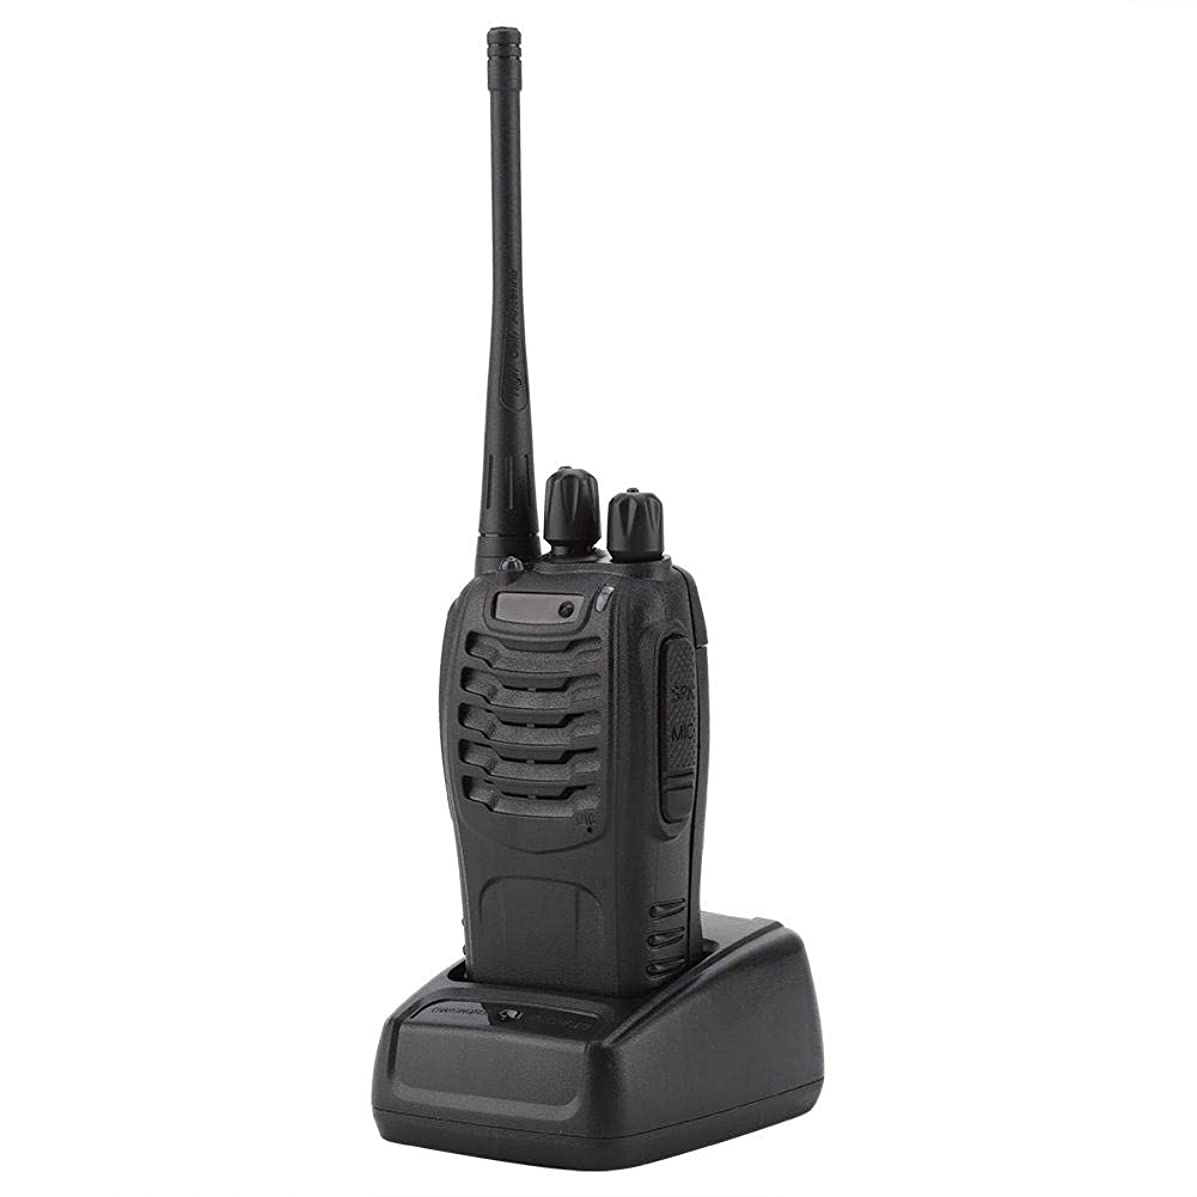 Walkie Talkie,with Rechargeable Battery Long Range 16 Channels Two Way Radio US Plug AC110-220V BF-888S